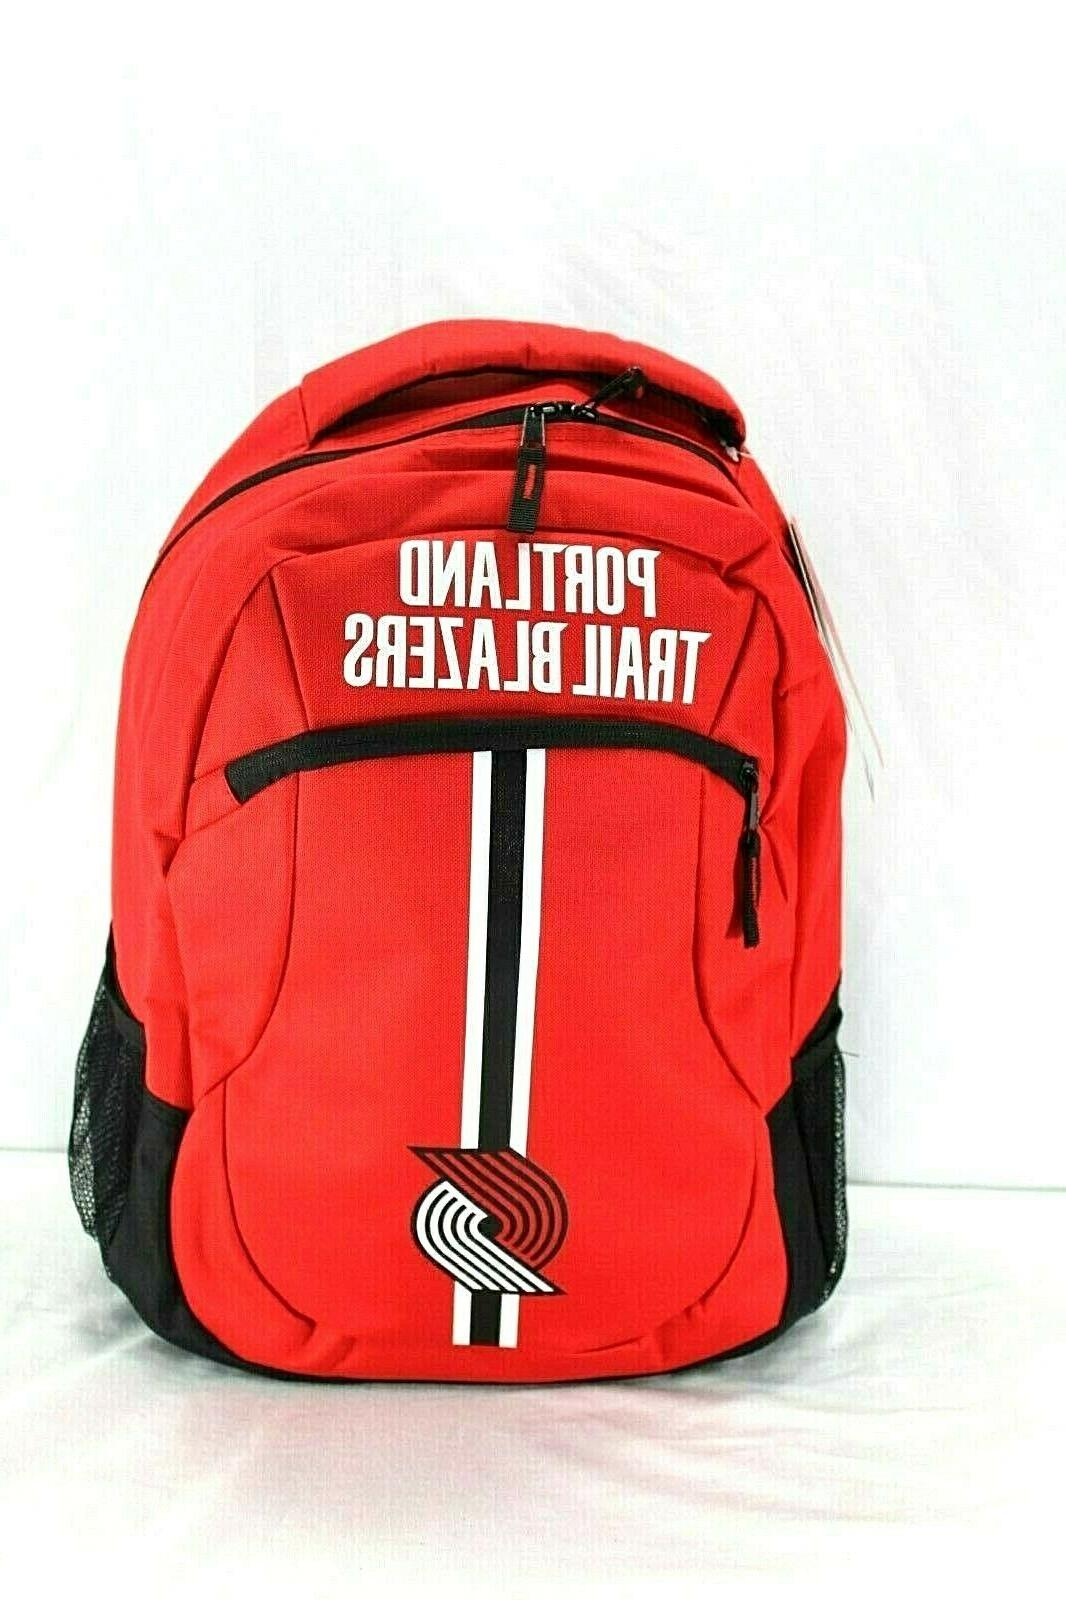 portland trail blazers nba backpack red action